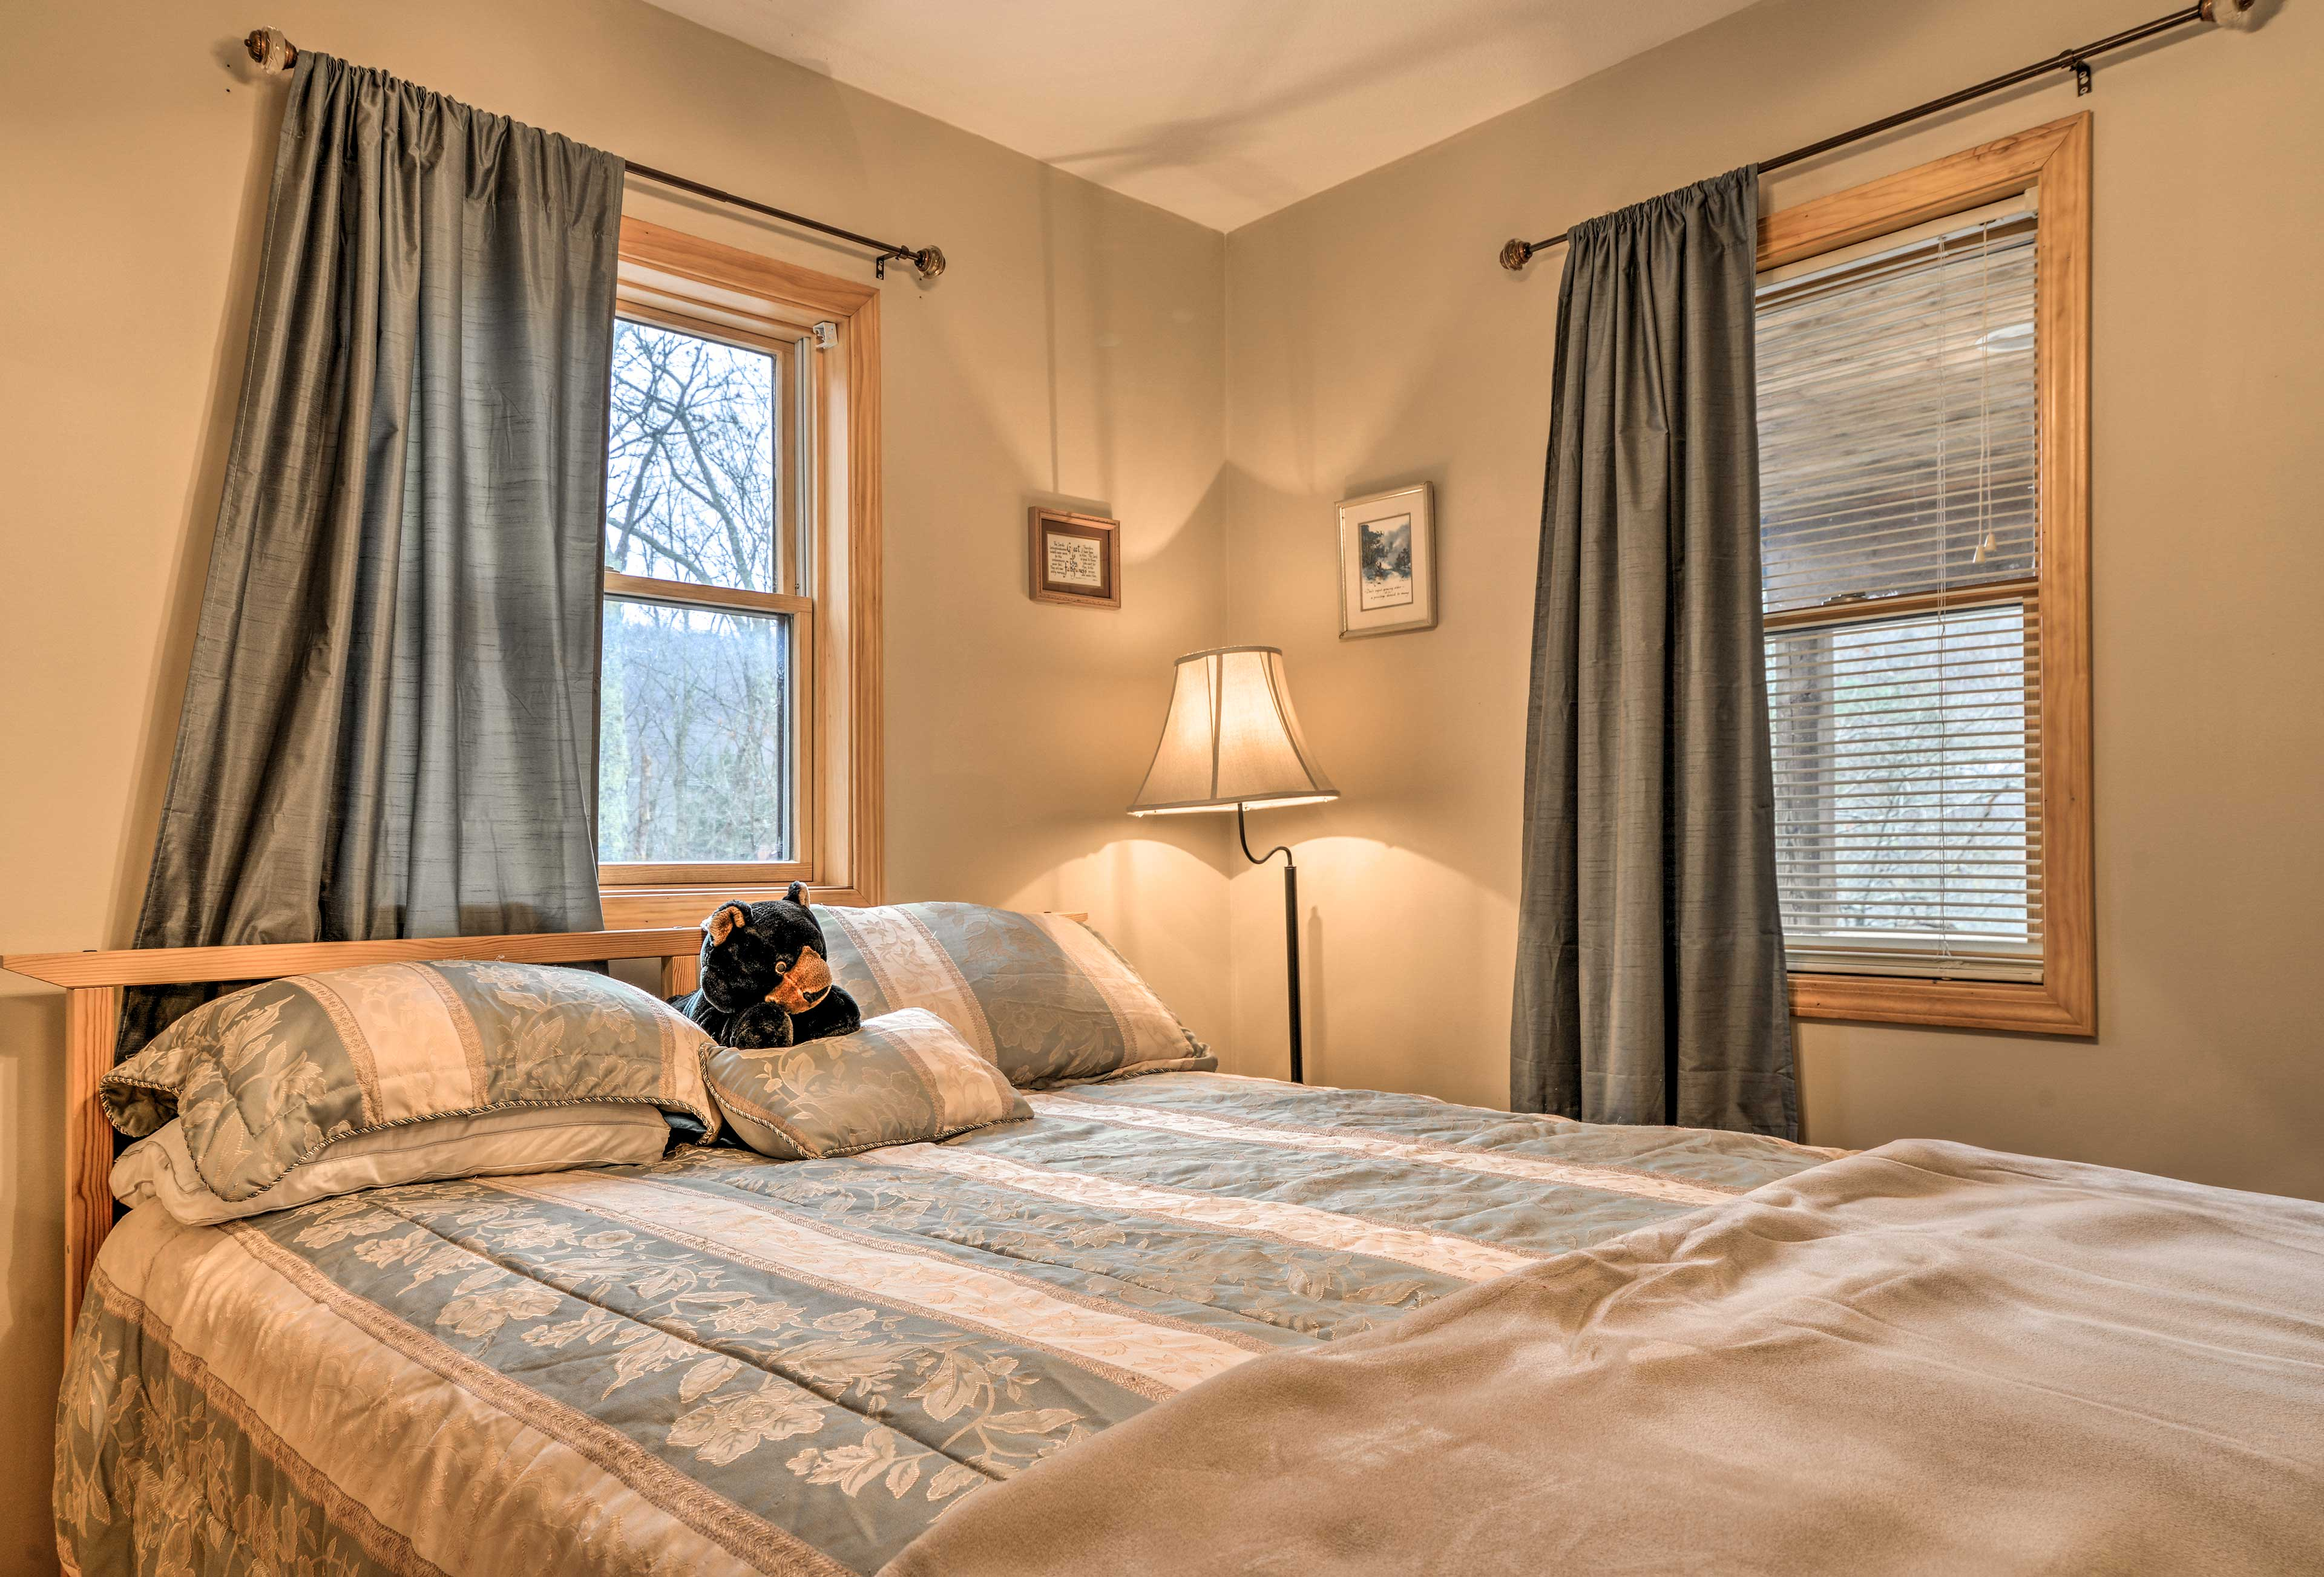 You'll get a bear-y good night of sleep in the master bedroom's queen-sized bed!